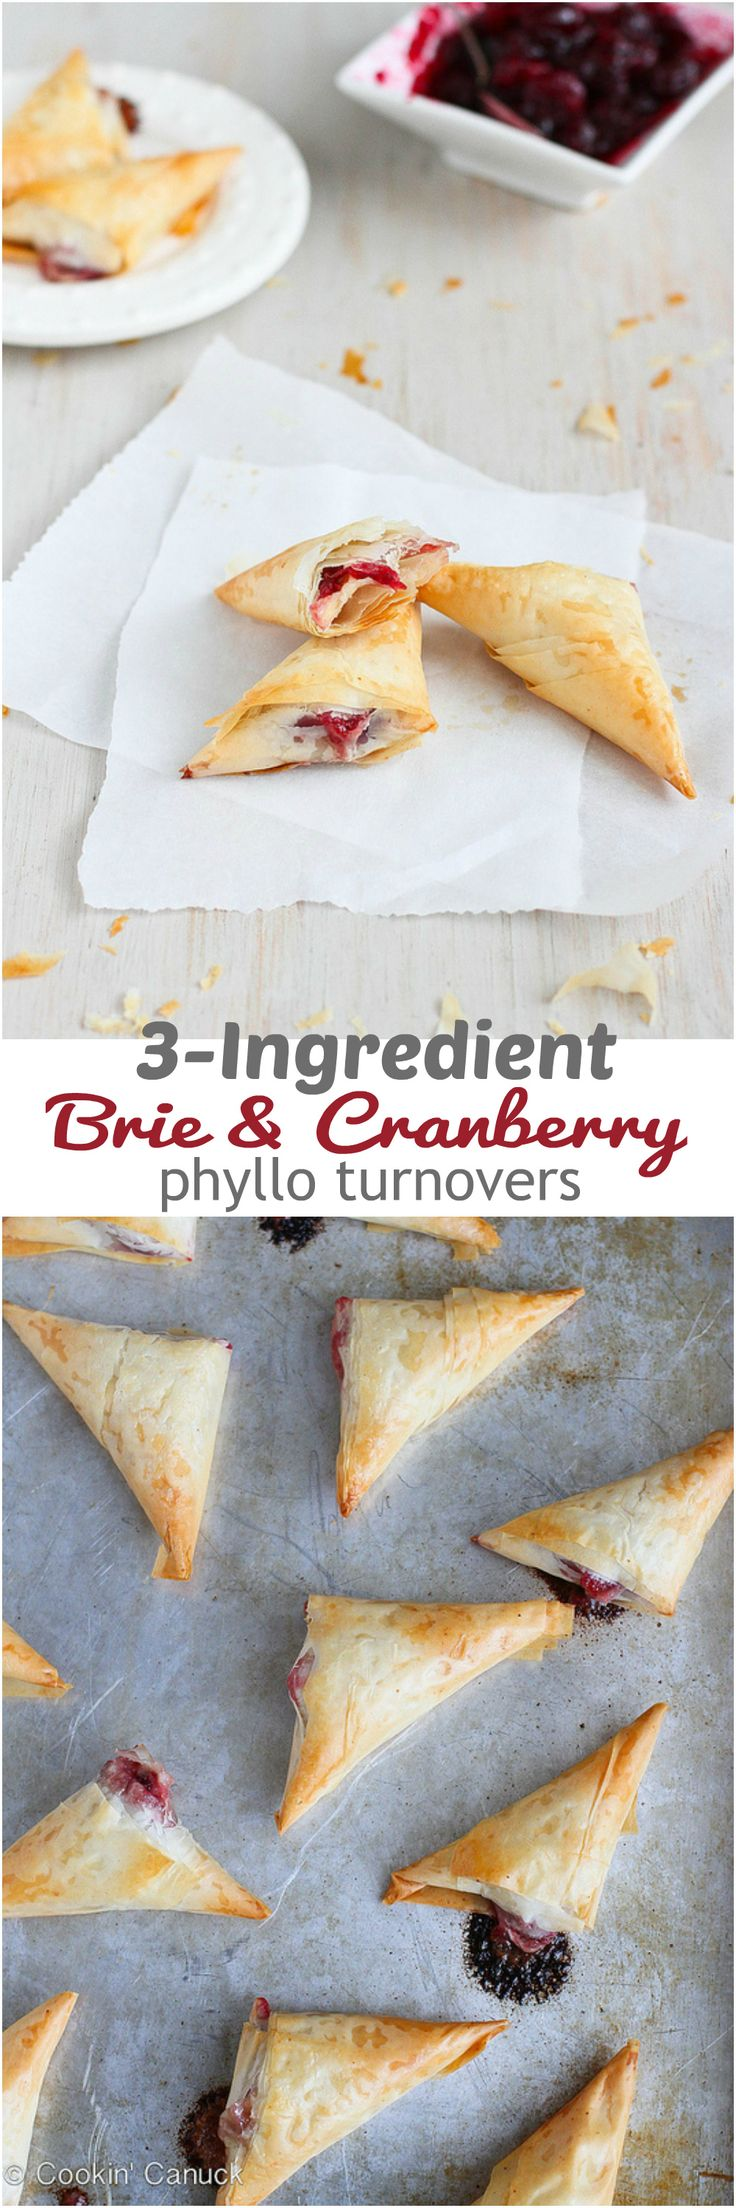 3-Ingredient Brie and Cranberry Phyllo Turnovers Recipe...58 calories and 2 Weight Watchers PP | cookincanuck.com #appetizer